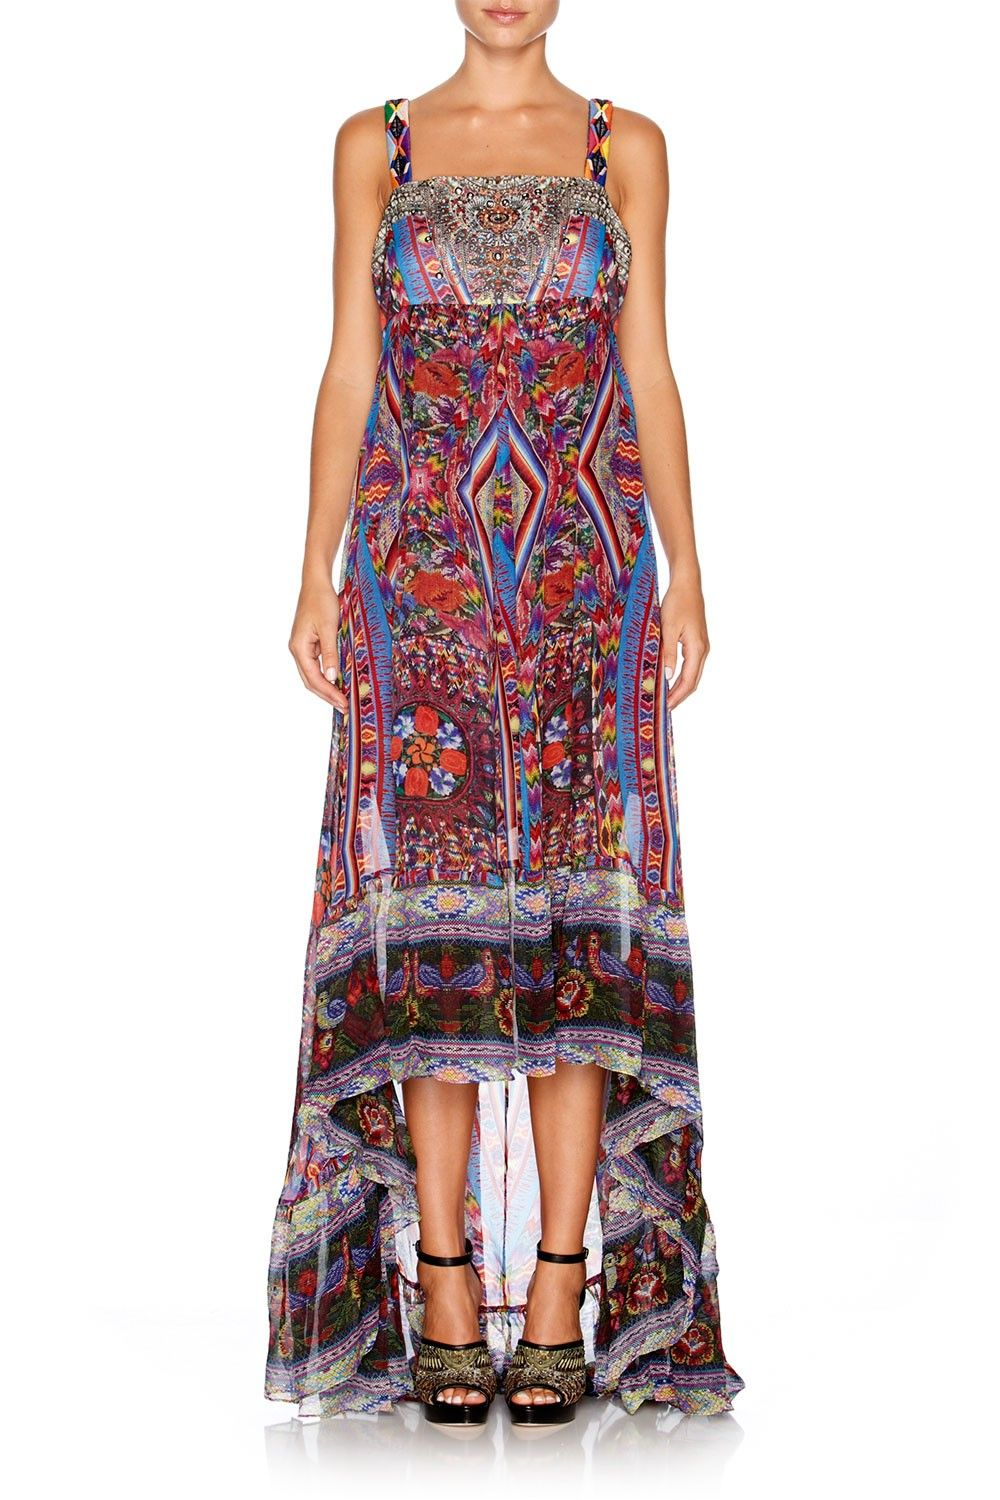 CAMILLA - TAPESTRY OF TIME GATHERED DRESS W/ FULL SKIRT - Dresses - Shop